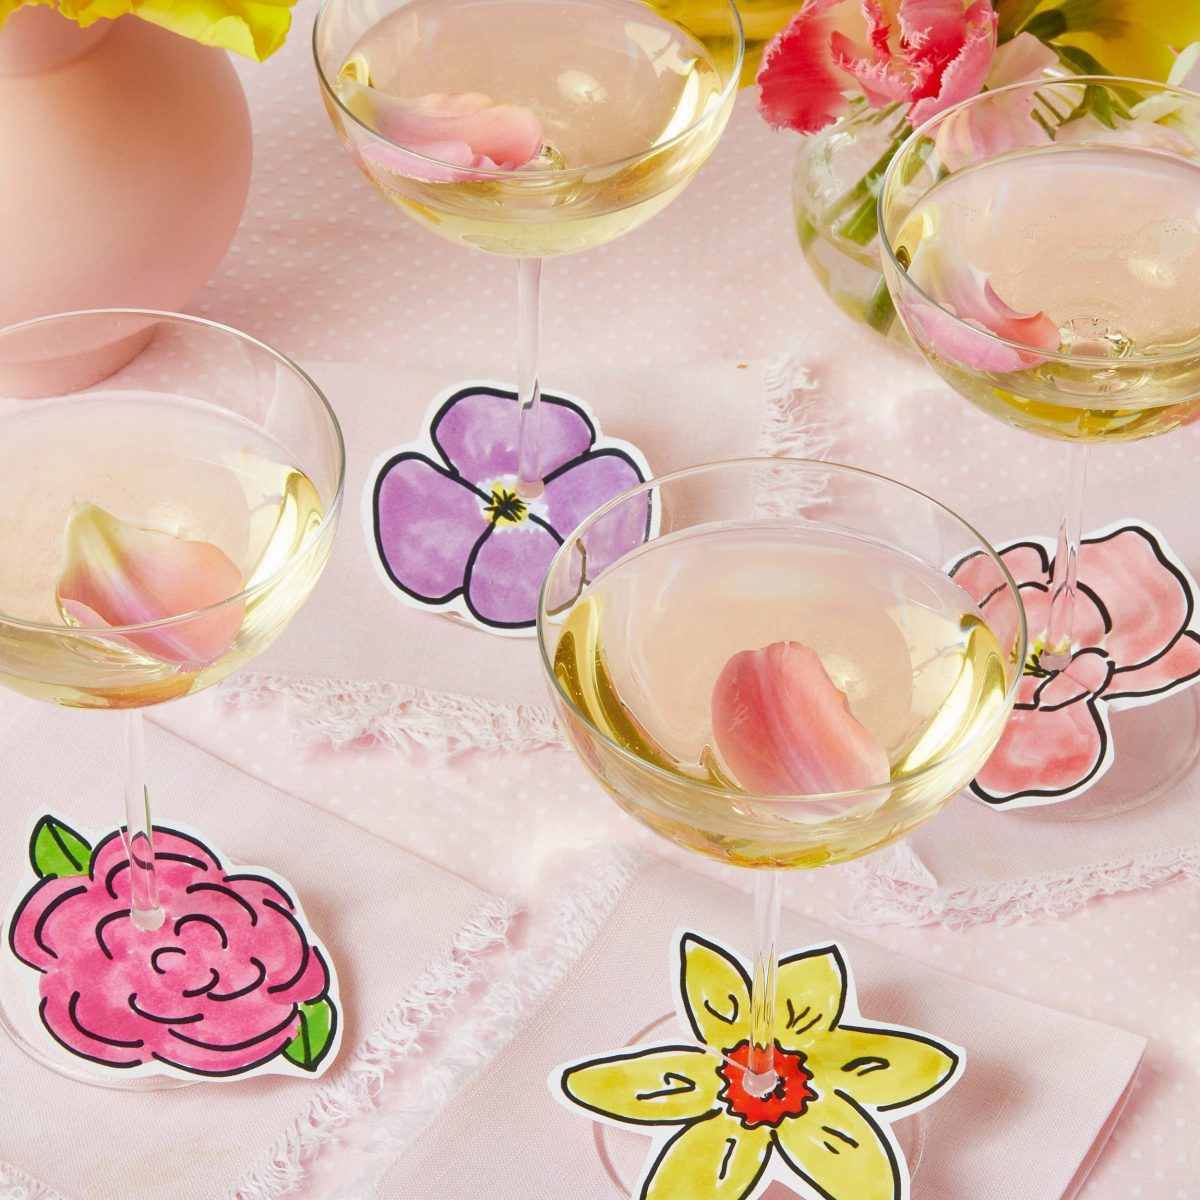 Darcy Miller, Darcy Miller Designs, Flowers, Mothers Day, Napkin Ring, Floral, Pink, Party, wine charms, DIY